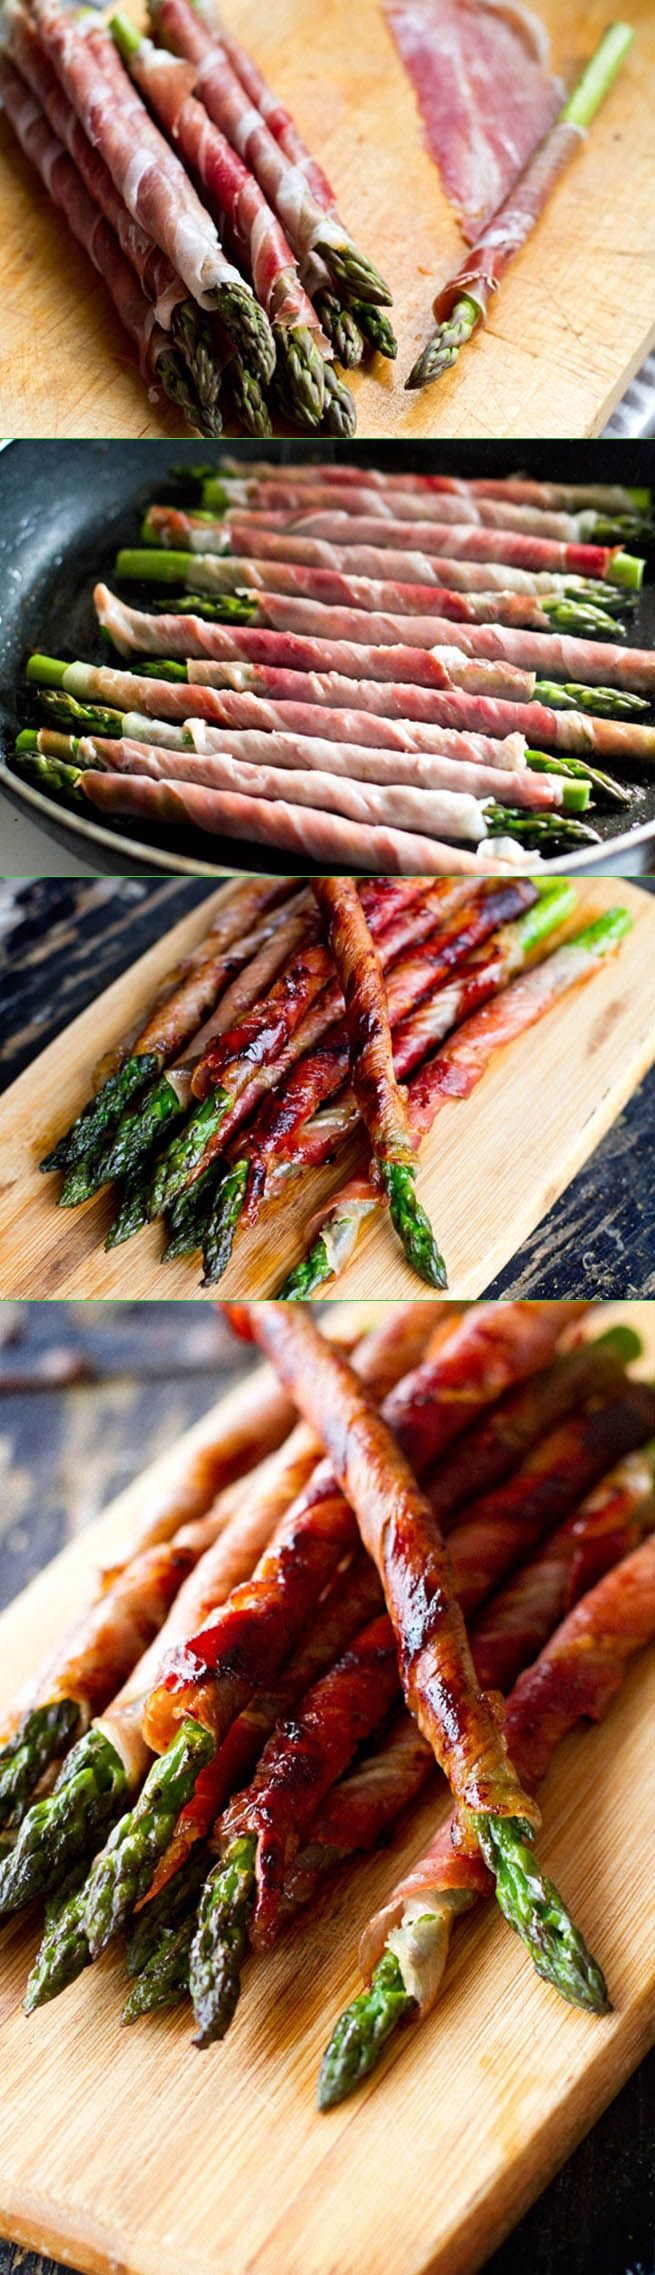 Prosciutto Wrapped Asparagus...Skip the french fries, did you say grilled meats?